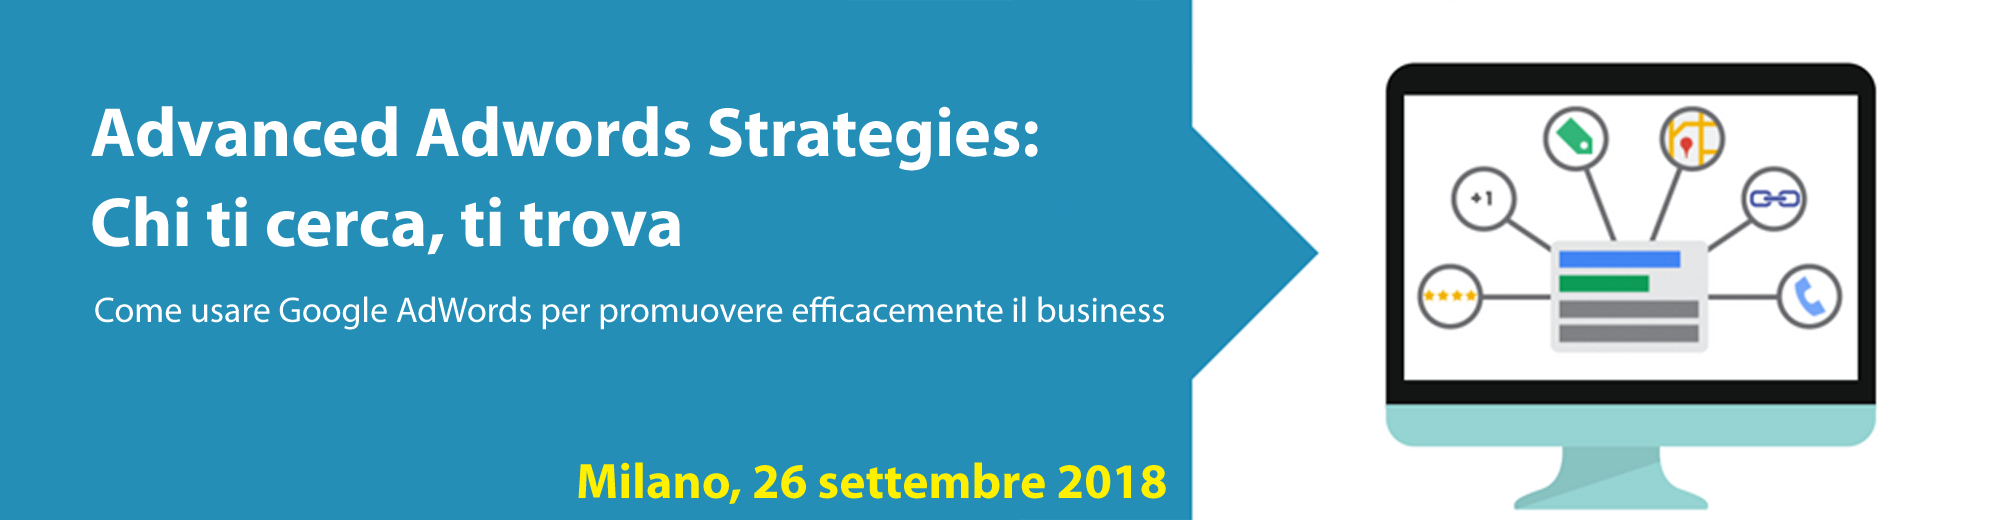 Advanced Adwords Strategies: chi ti cerca, ti trova